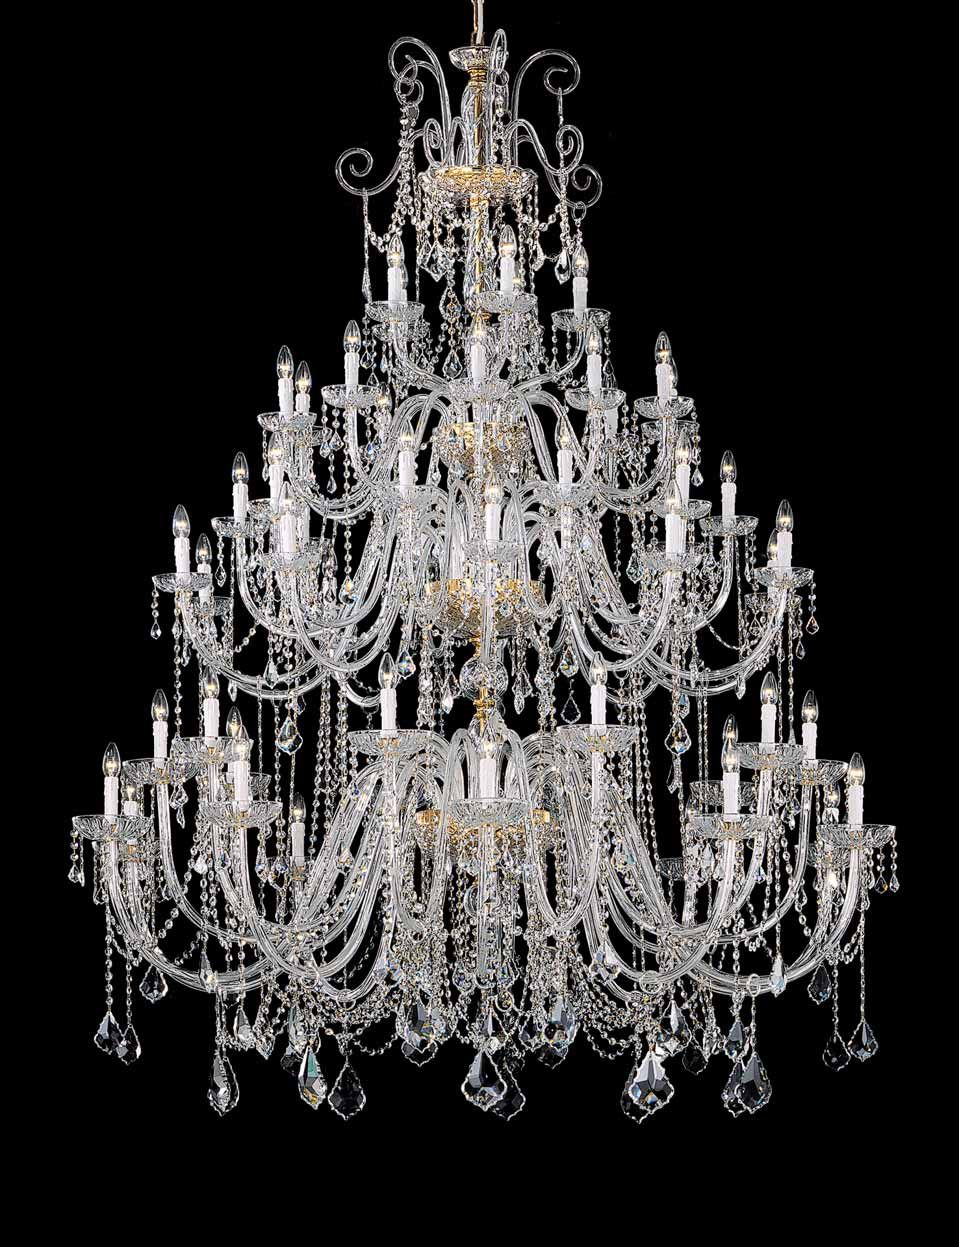 Topdomus Large Lead Crystal Chandelier With Artistic Hand And